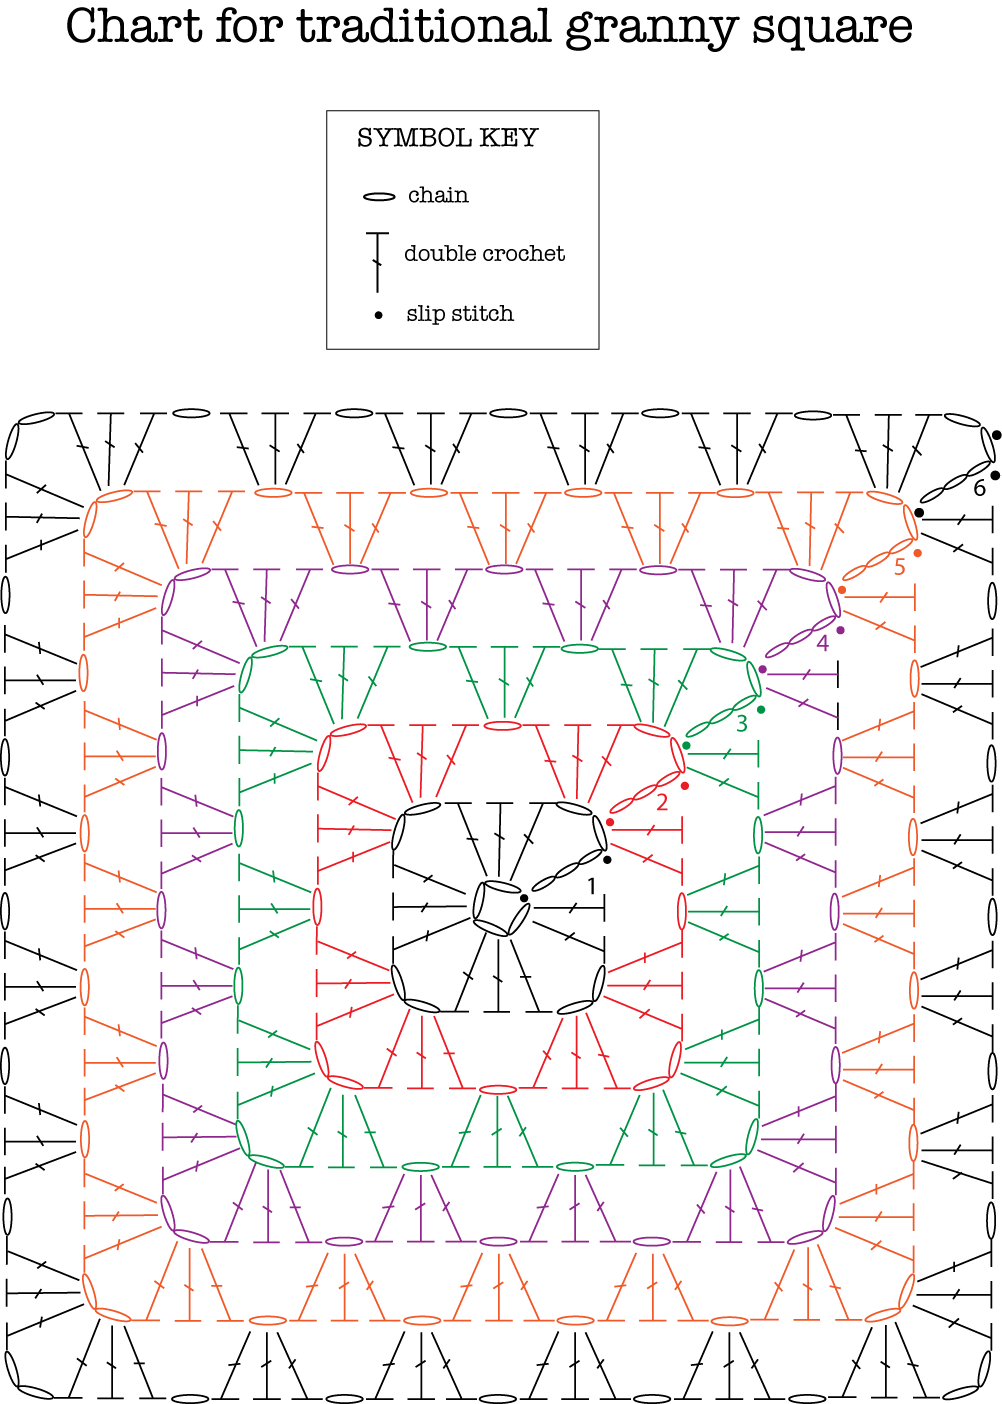 Crochet Stitches Chart Pdf : So, as you can seethis chart has a legend, and the stitches used for ...